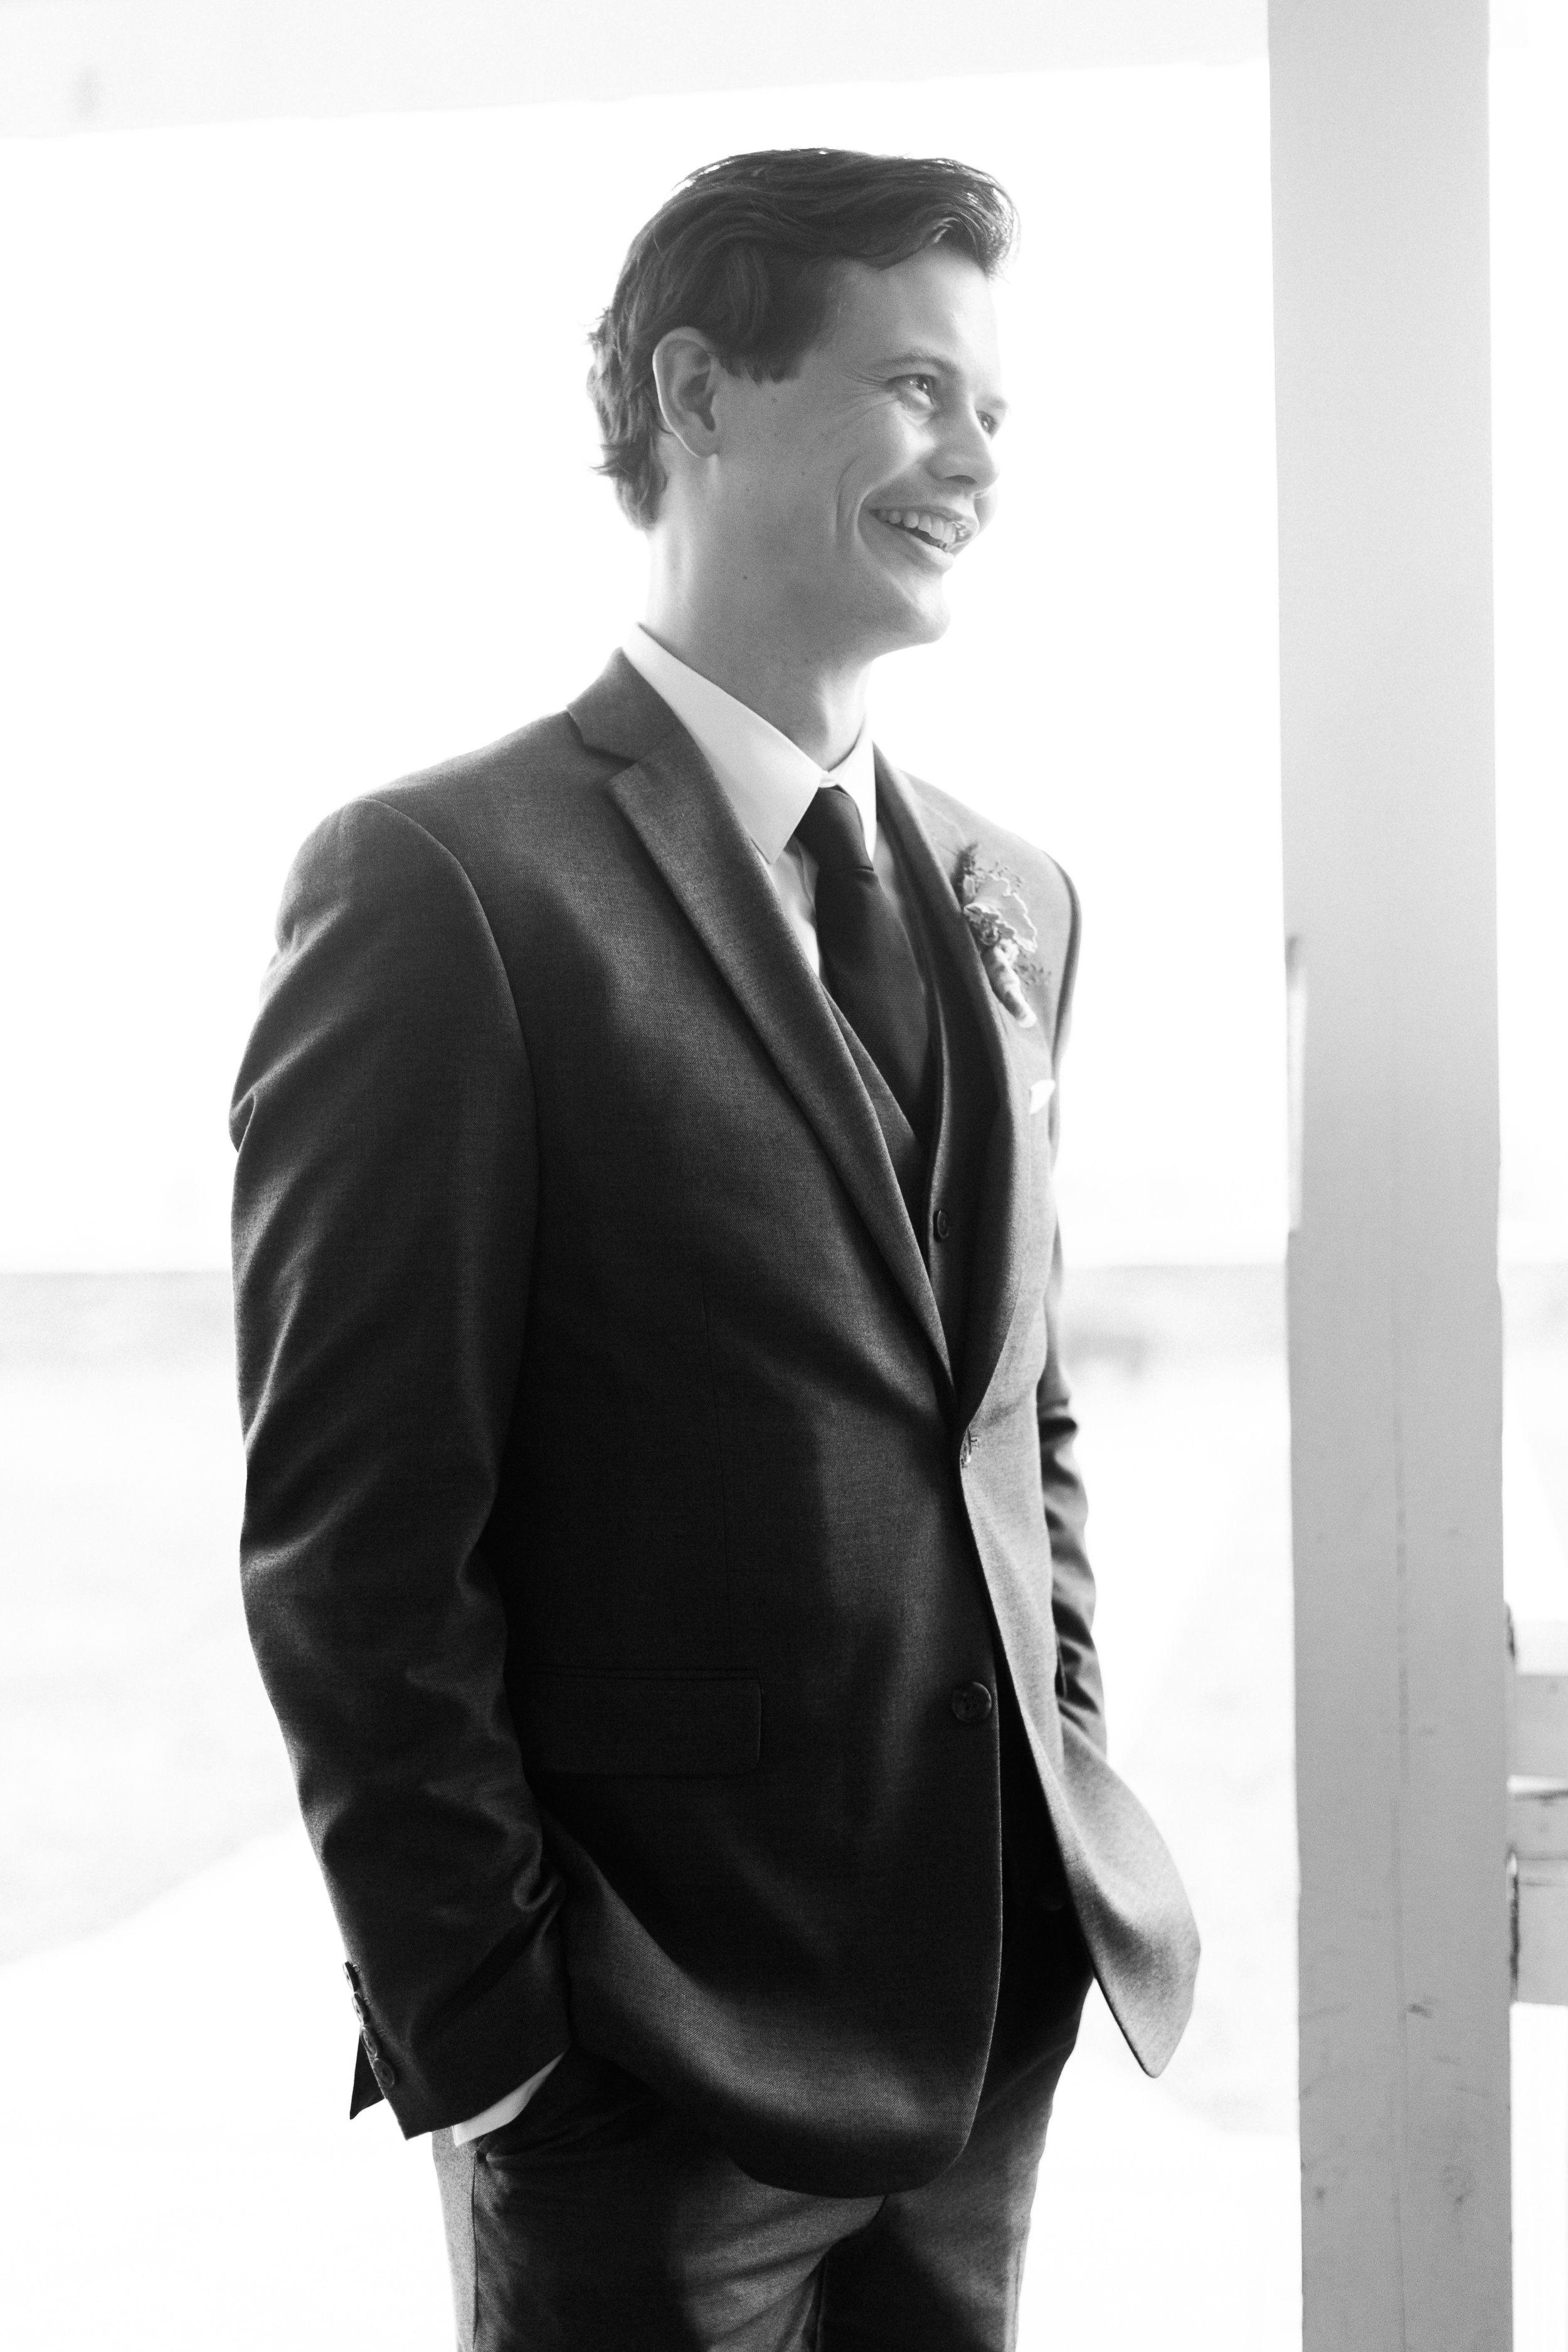 groom-black-and-white-wedding-portrait-michelle-whitley